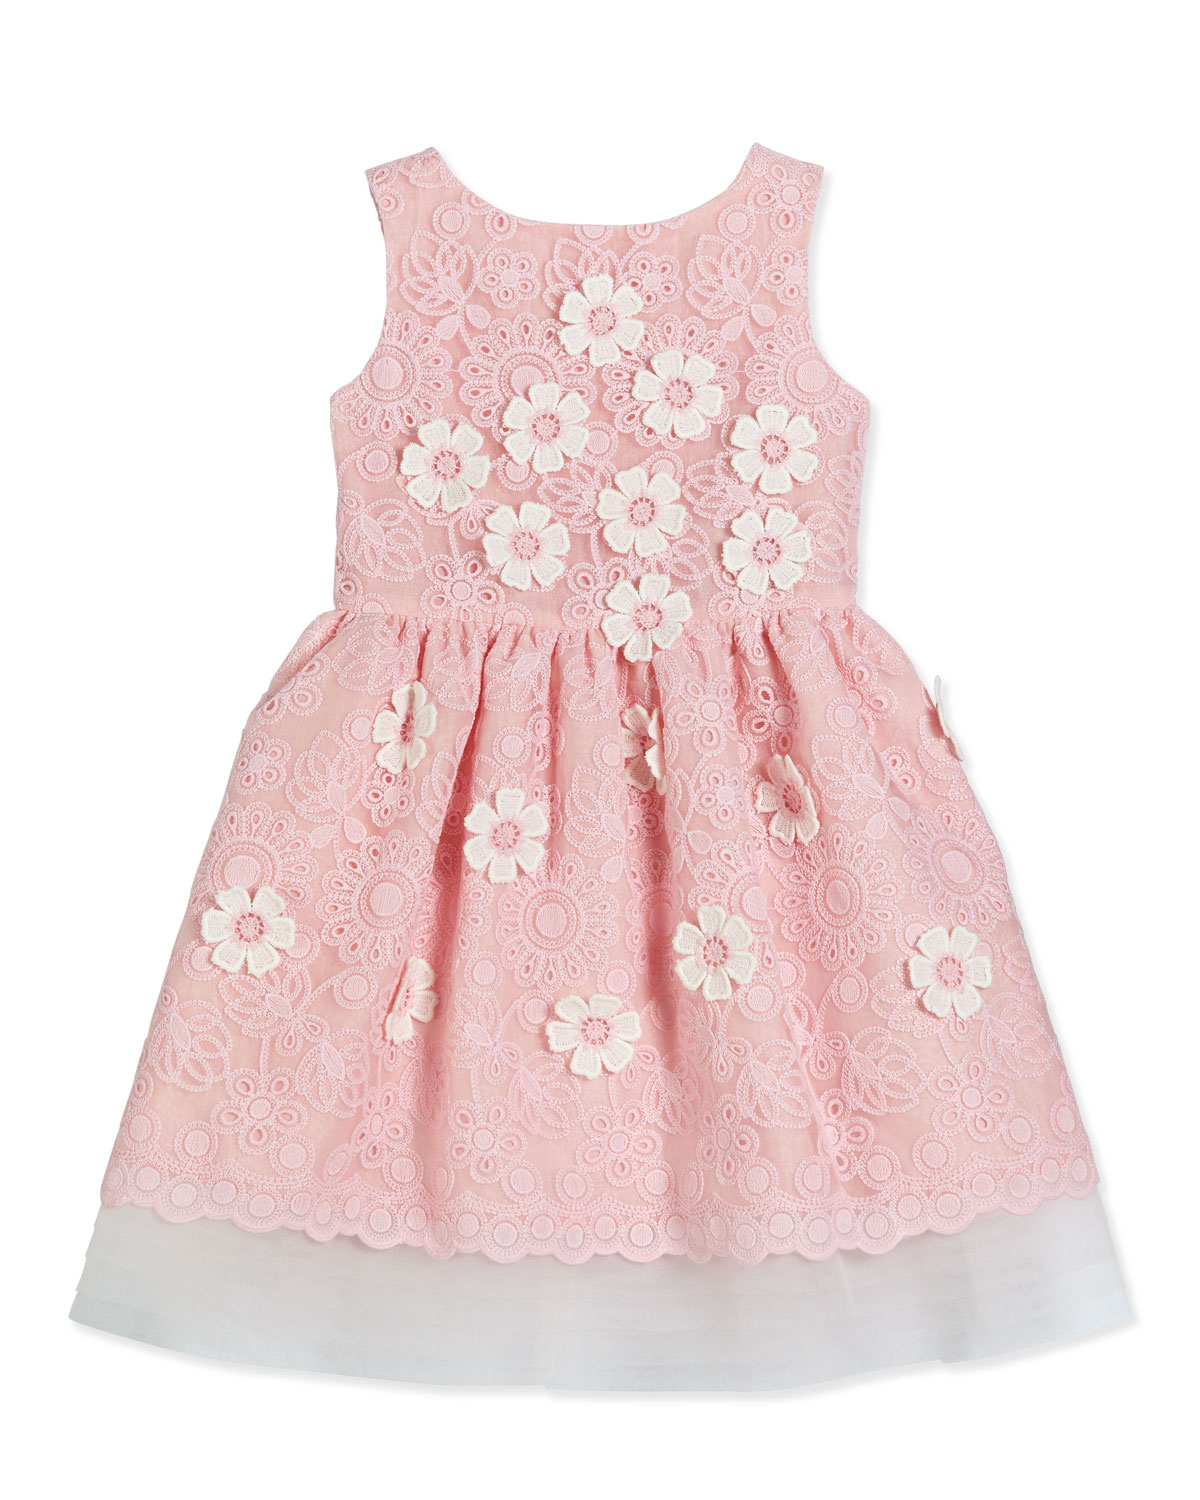 Charabia Sleeveless Floral Lace A-Line Dress, Pink, Size 2-6, Girl's, Size: 5